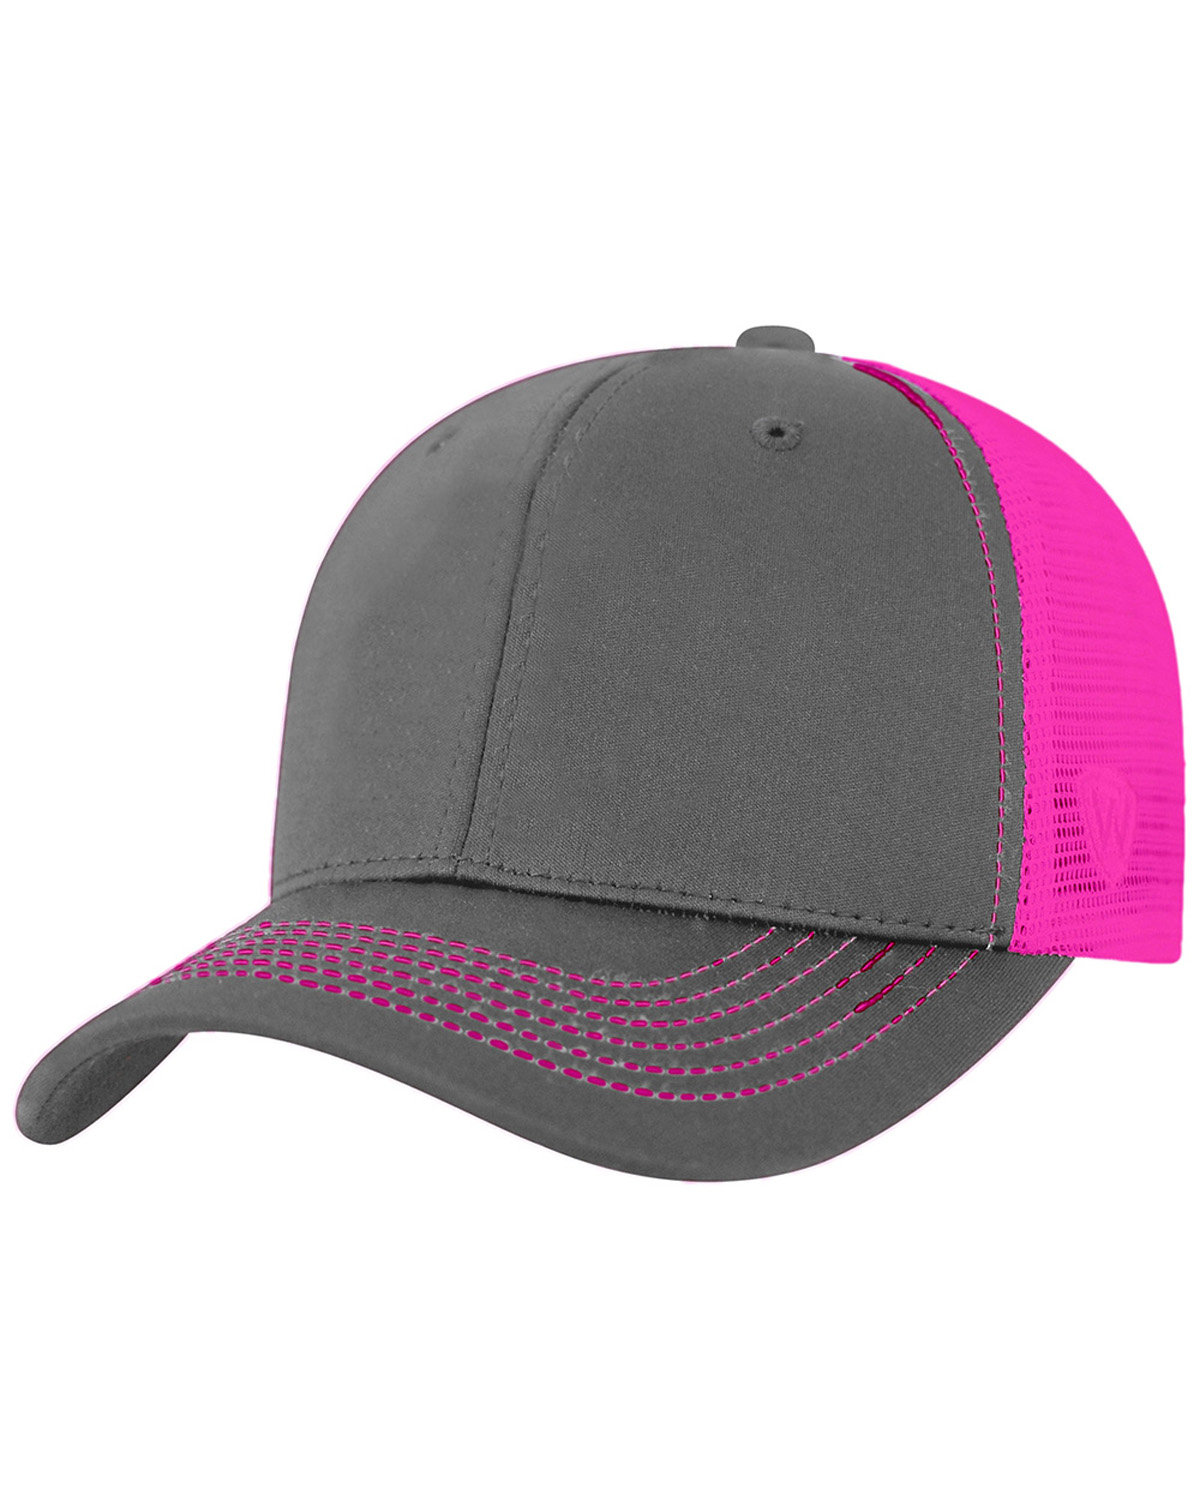 Top Of The World Adult Ranger Cap CHRCL/ NEON PINK